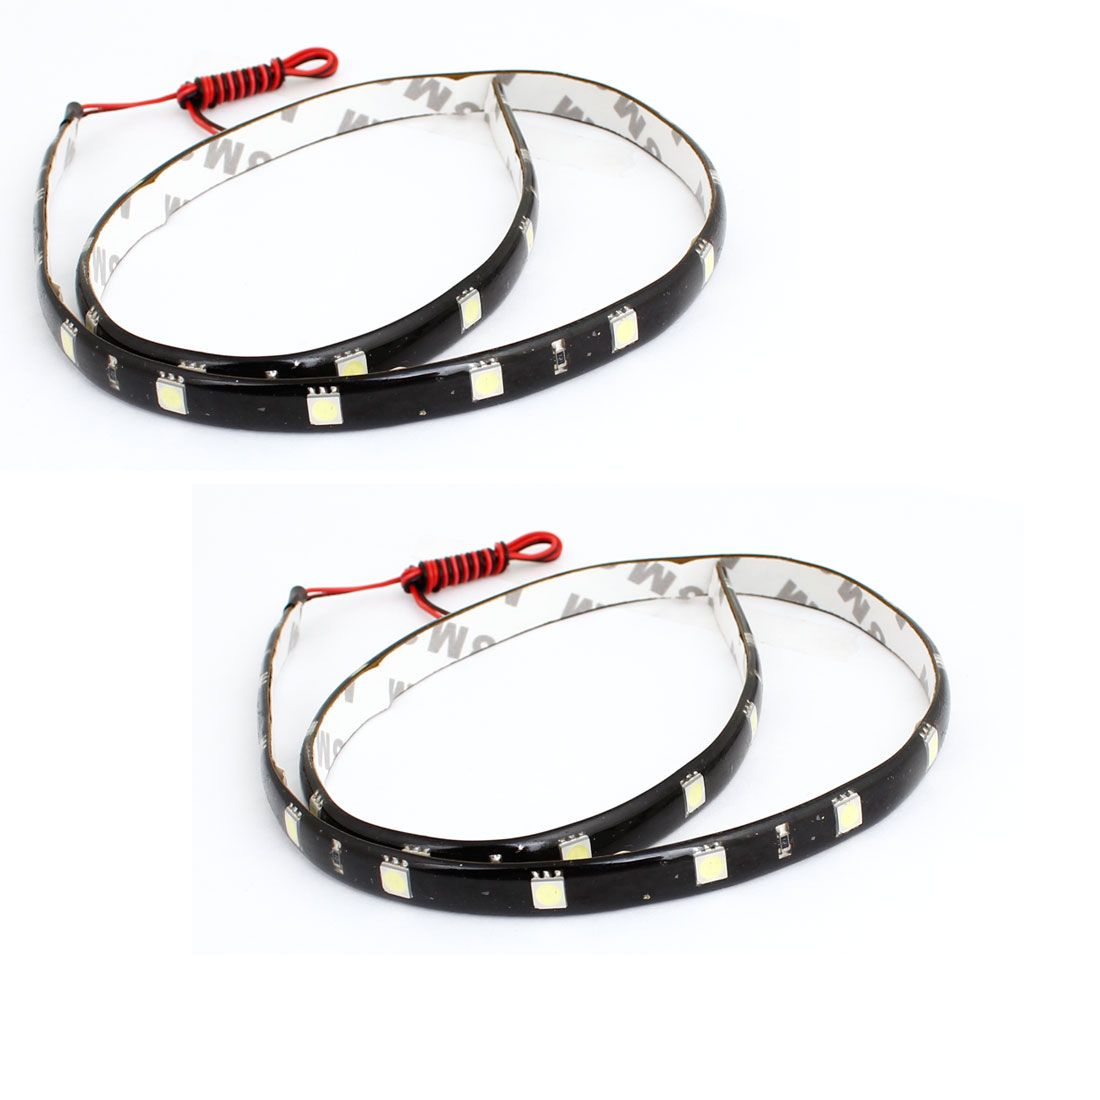 2 Pcs Adhesive Tape White 24 5050 SMD Auto Car Flexible Decor LED Strip 61cm